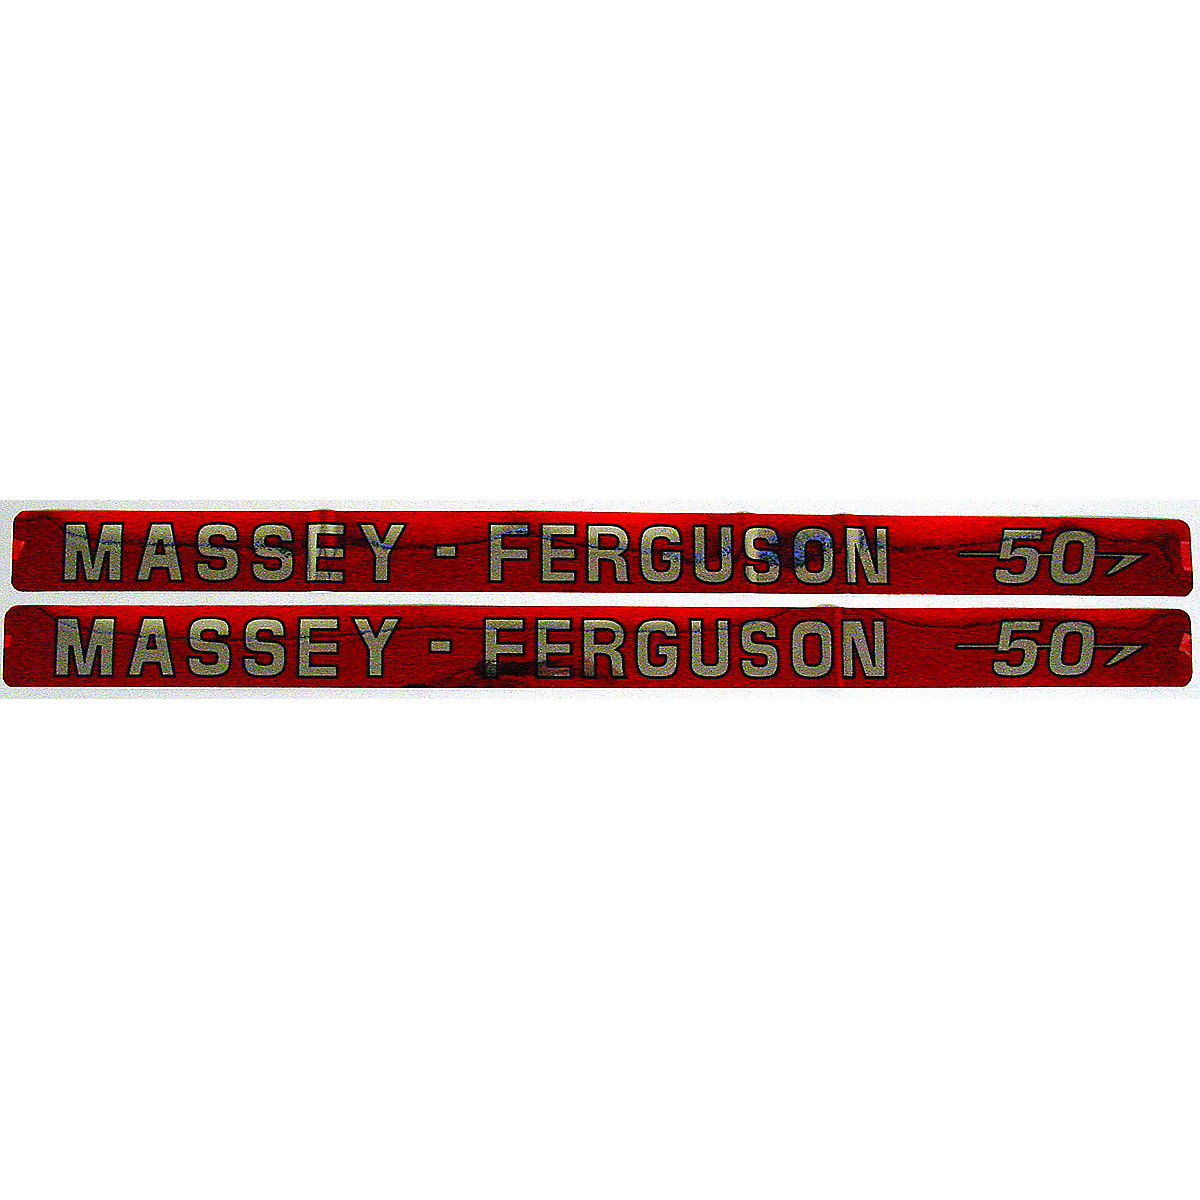 Mylar Hood Decal Set For Massey Ferguson: 50.